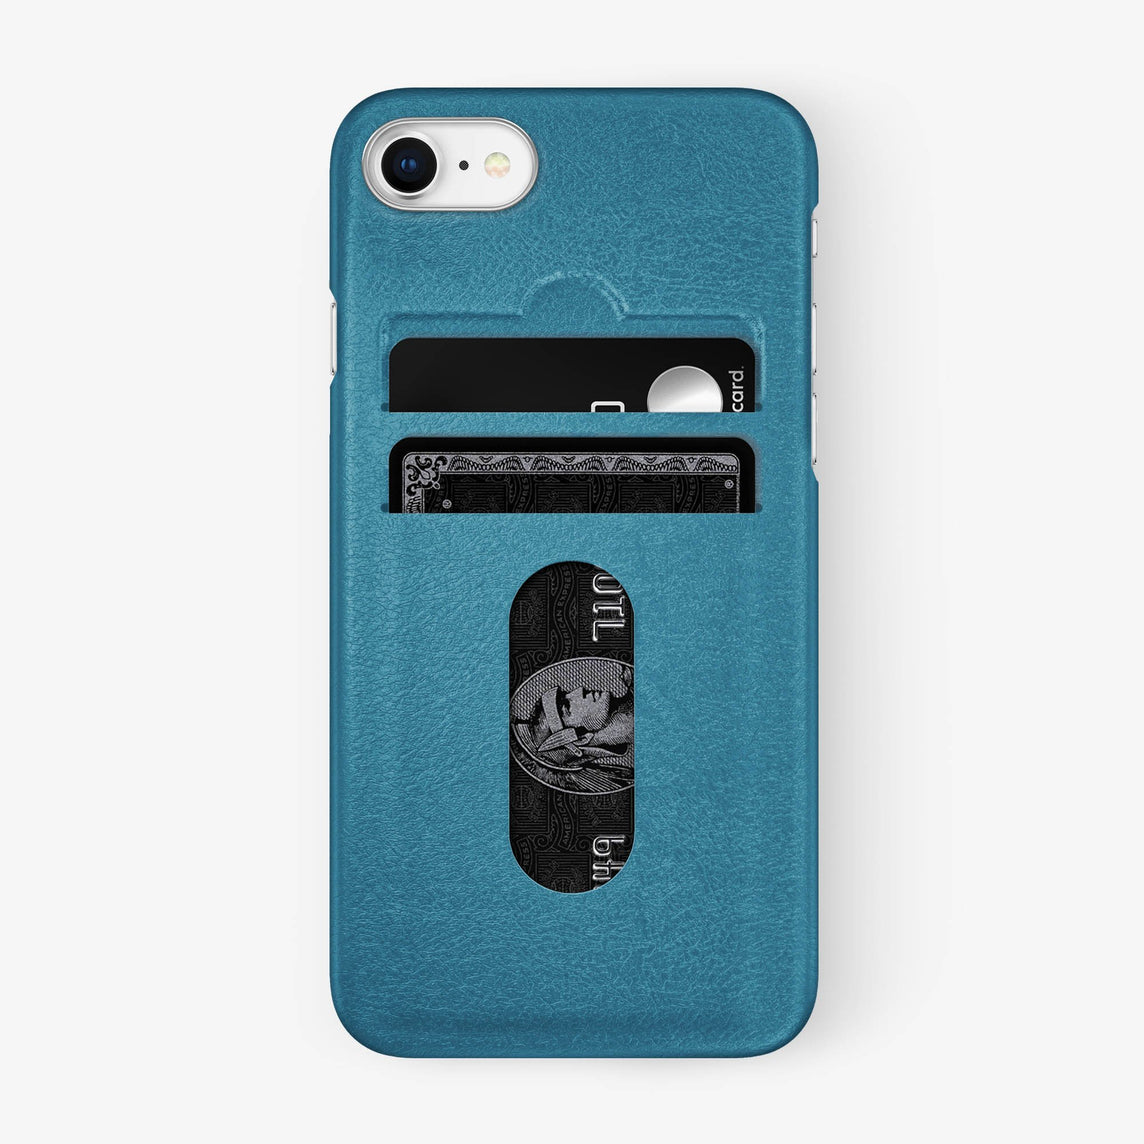 Calfskin Card Holder Case iPhone 7/8 | Teal - Stainless Steel